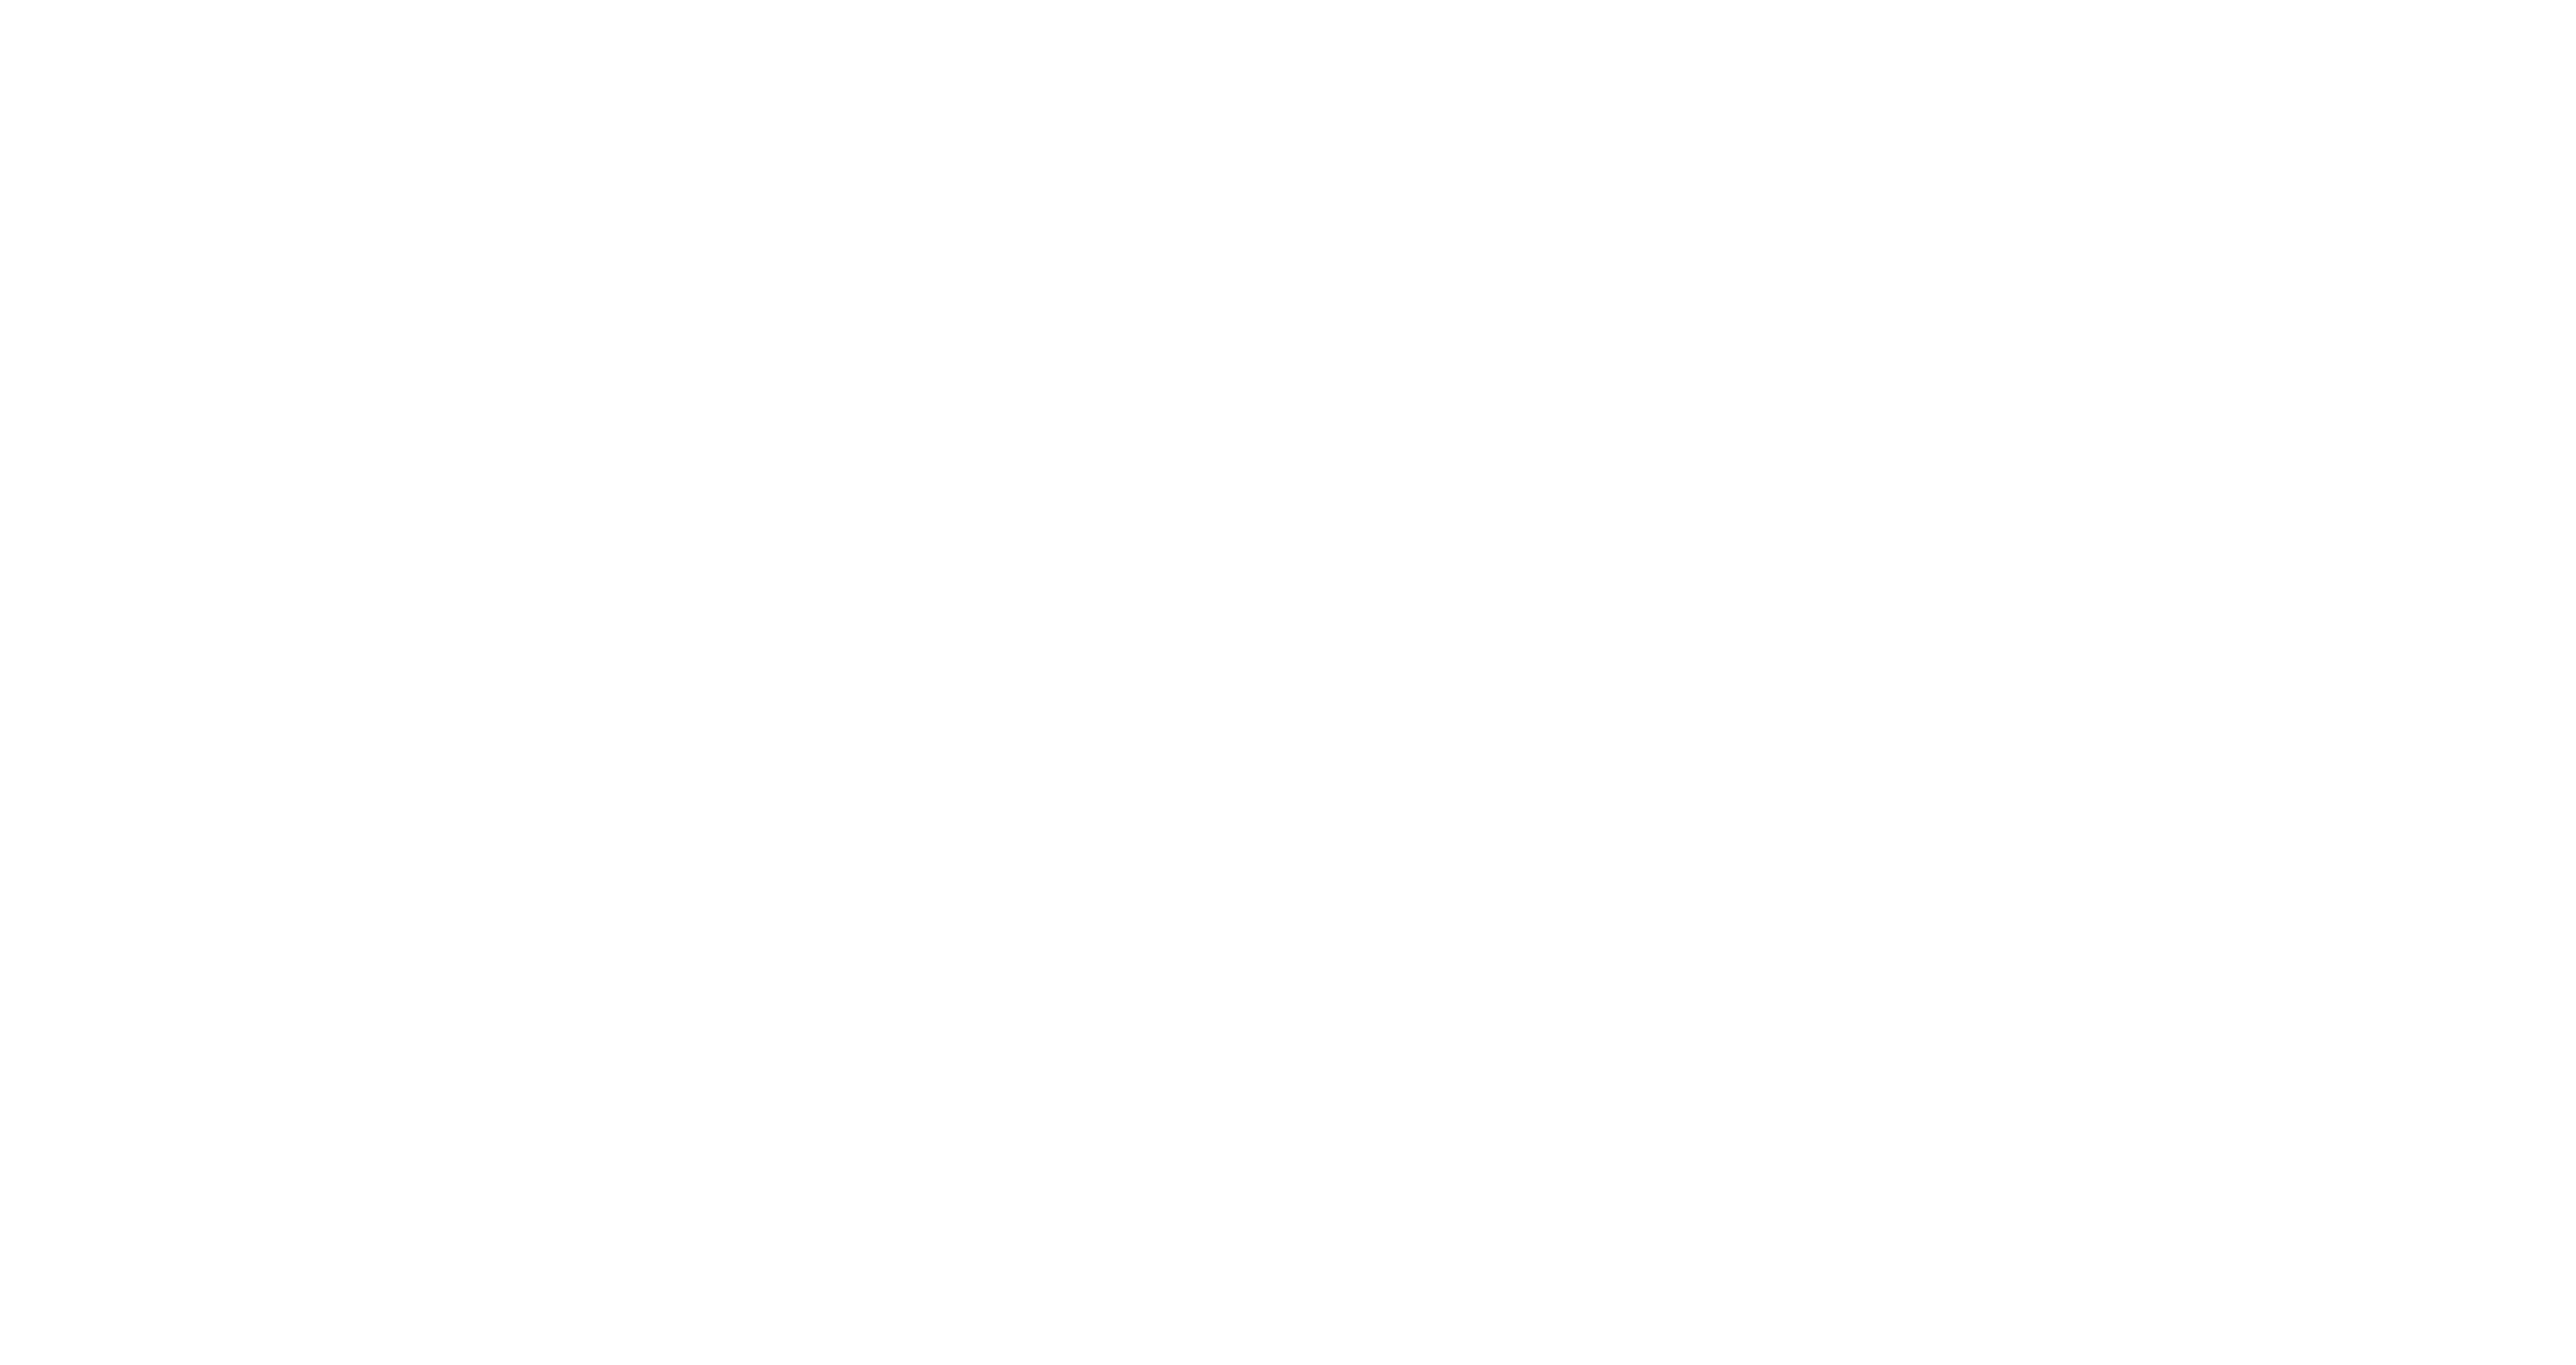 Michele Reinert Photography